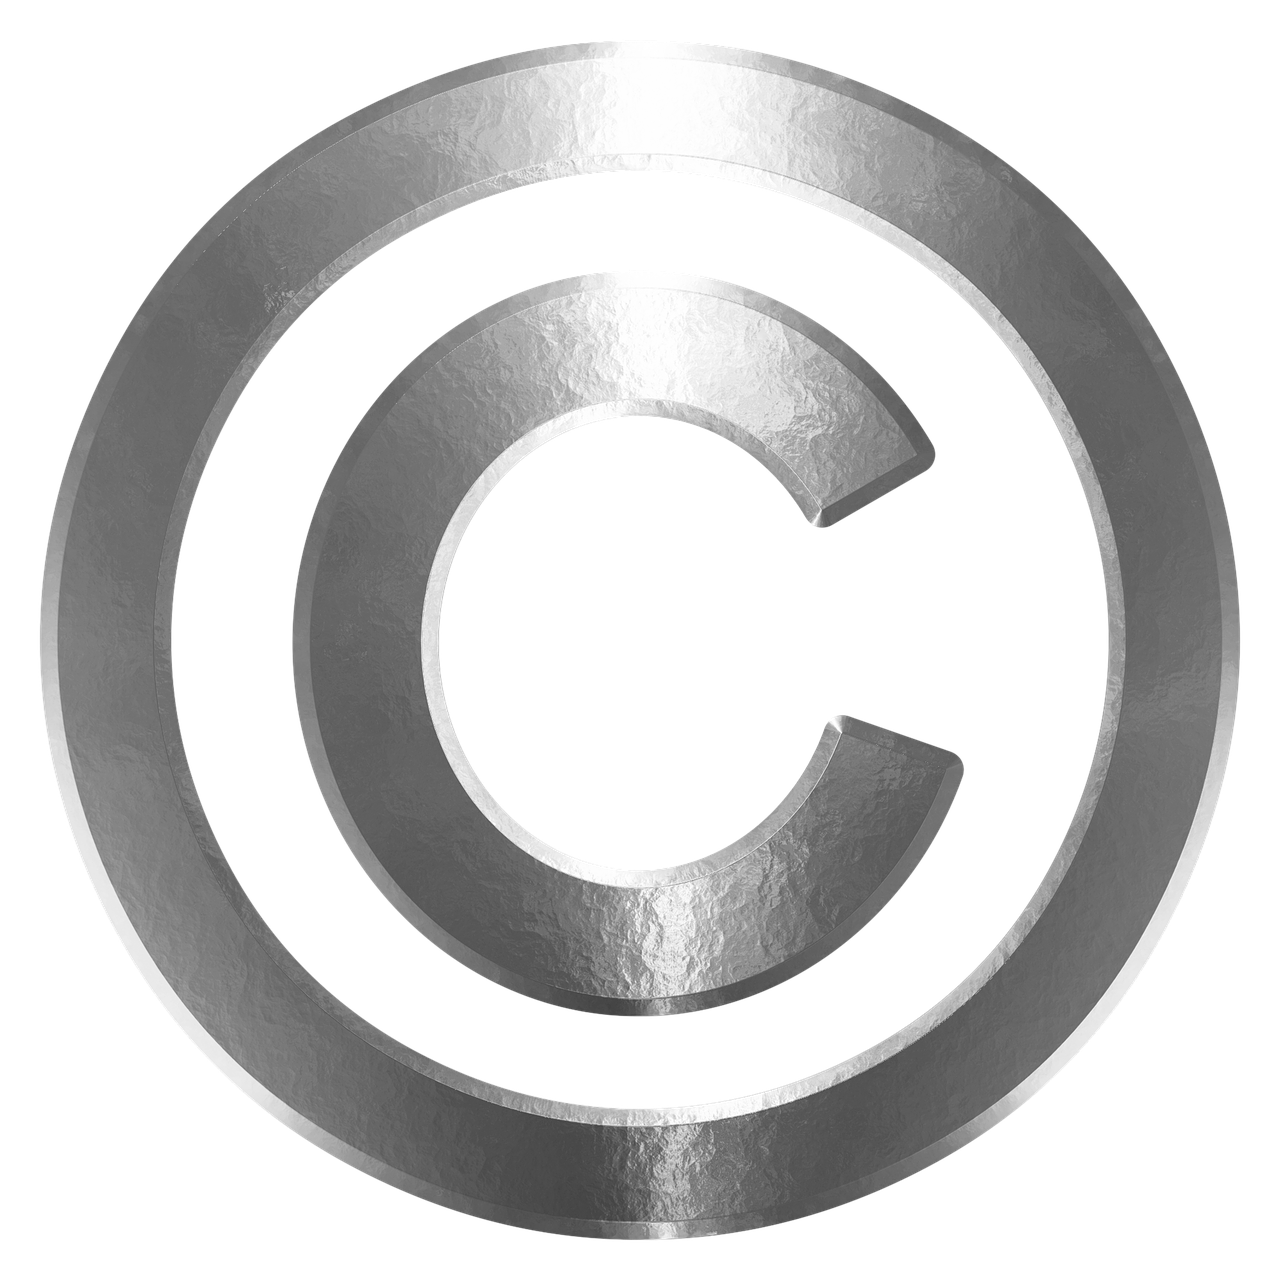 icon-1721860_1280.png